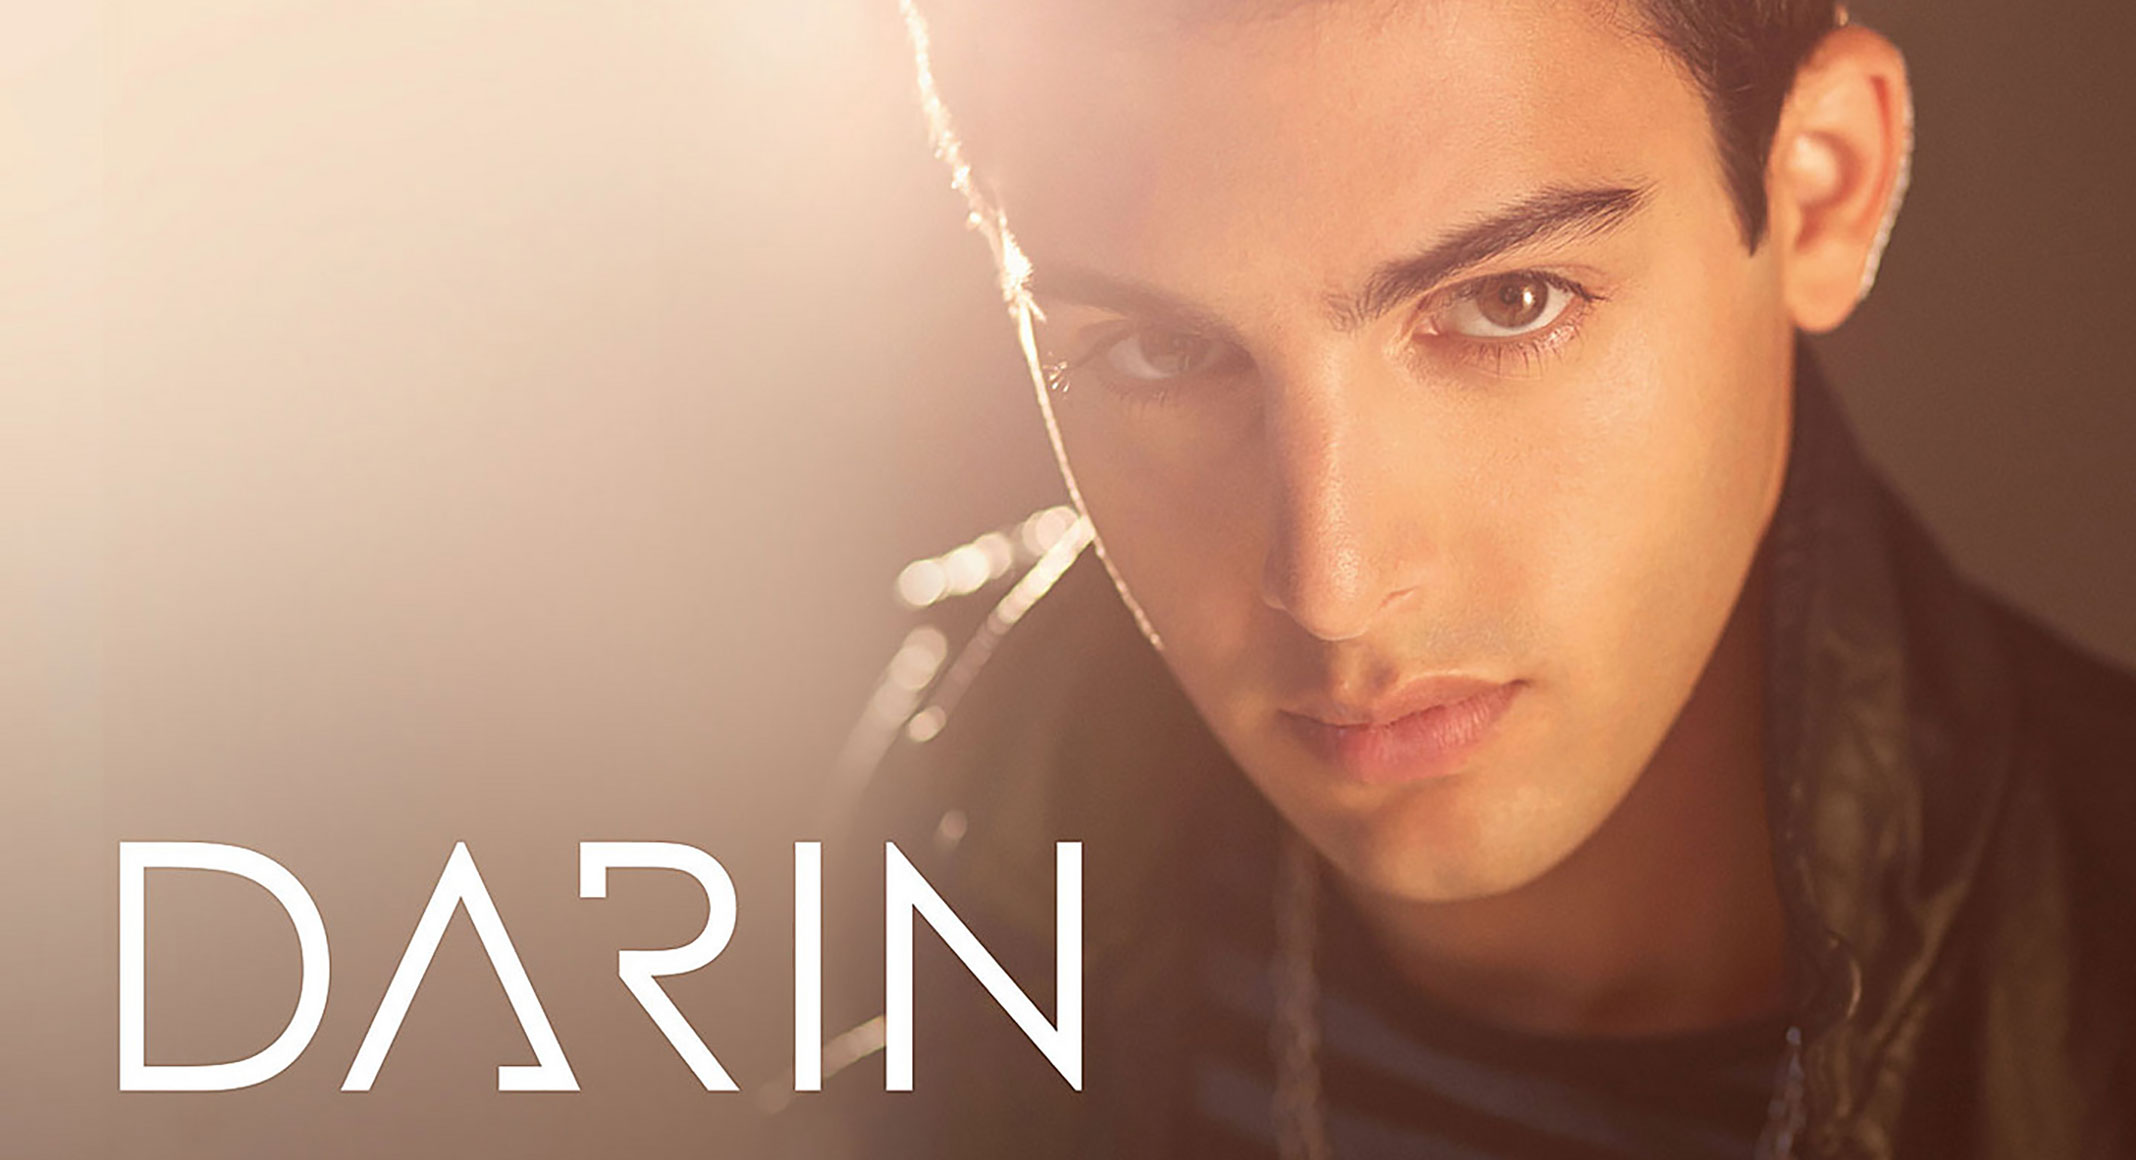 Darin – One of Sweden's biggest Pop Stars – comes out as gay